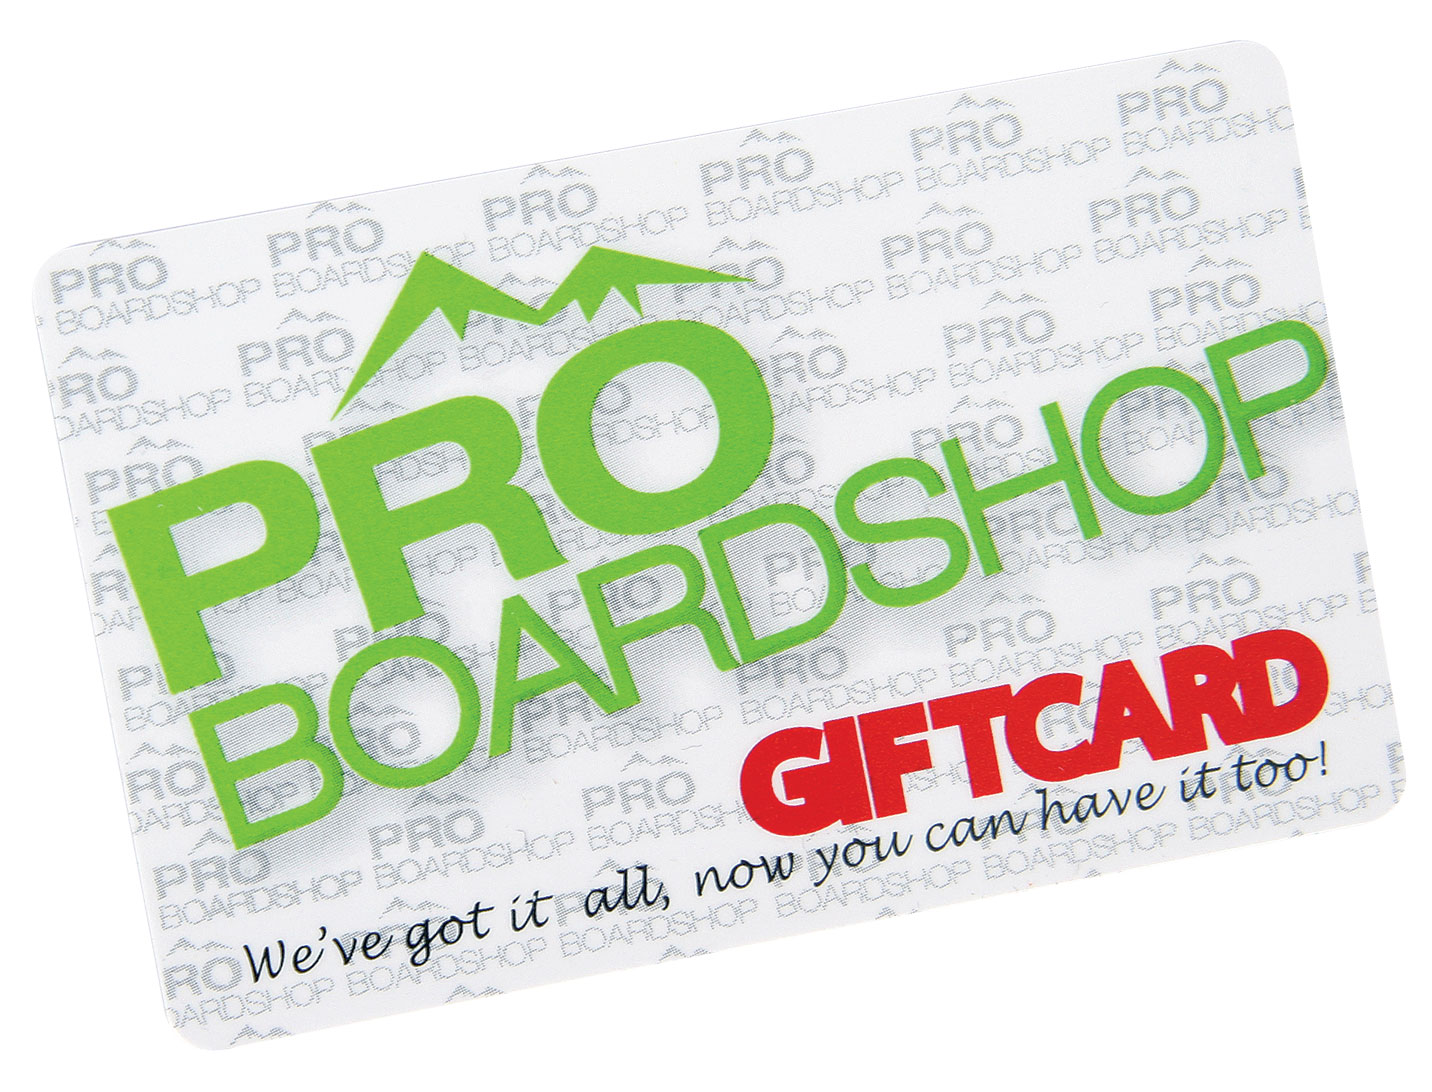 Let them choose! Whether you're having trouble picking the right gift, or you just want to make sure they get the perfect gear, a Proboardshop gift card is sure to please. No more worries about the right color, size, or current style. You'll get 5 stars for gift giving, and they'll get exactly what they want. Note:Currently, Proboardshop gift cards are only redeemable through phone sale. The lucky receiver should call 1-888-557-0551 to place their order and redeem their gift card. - $300.00